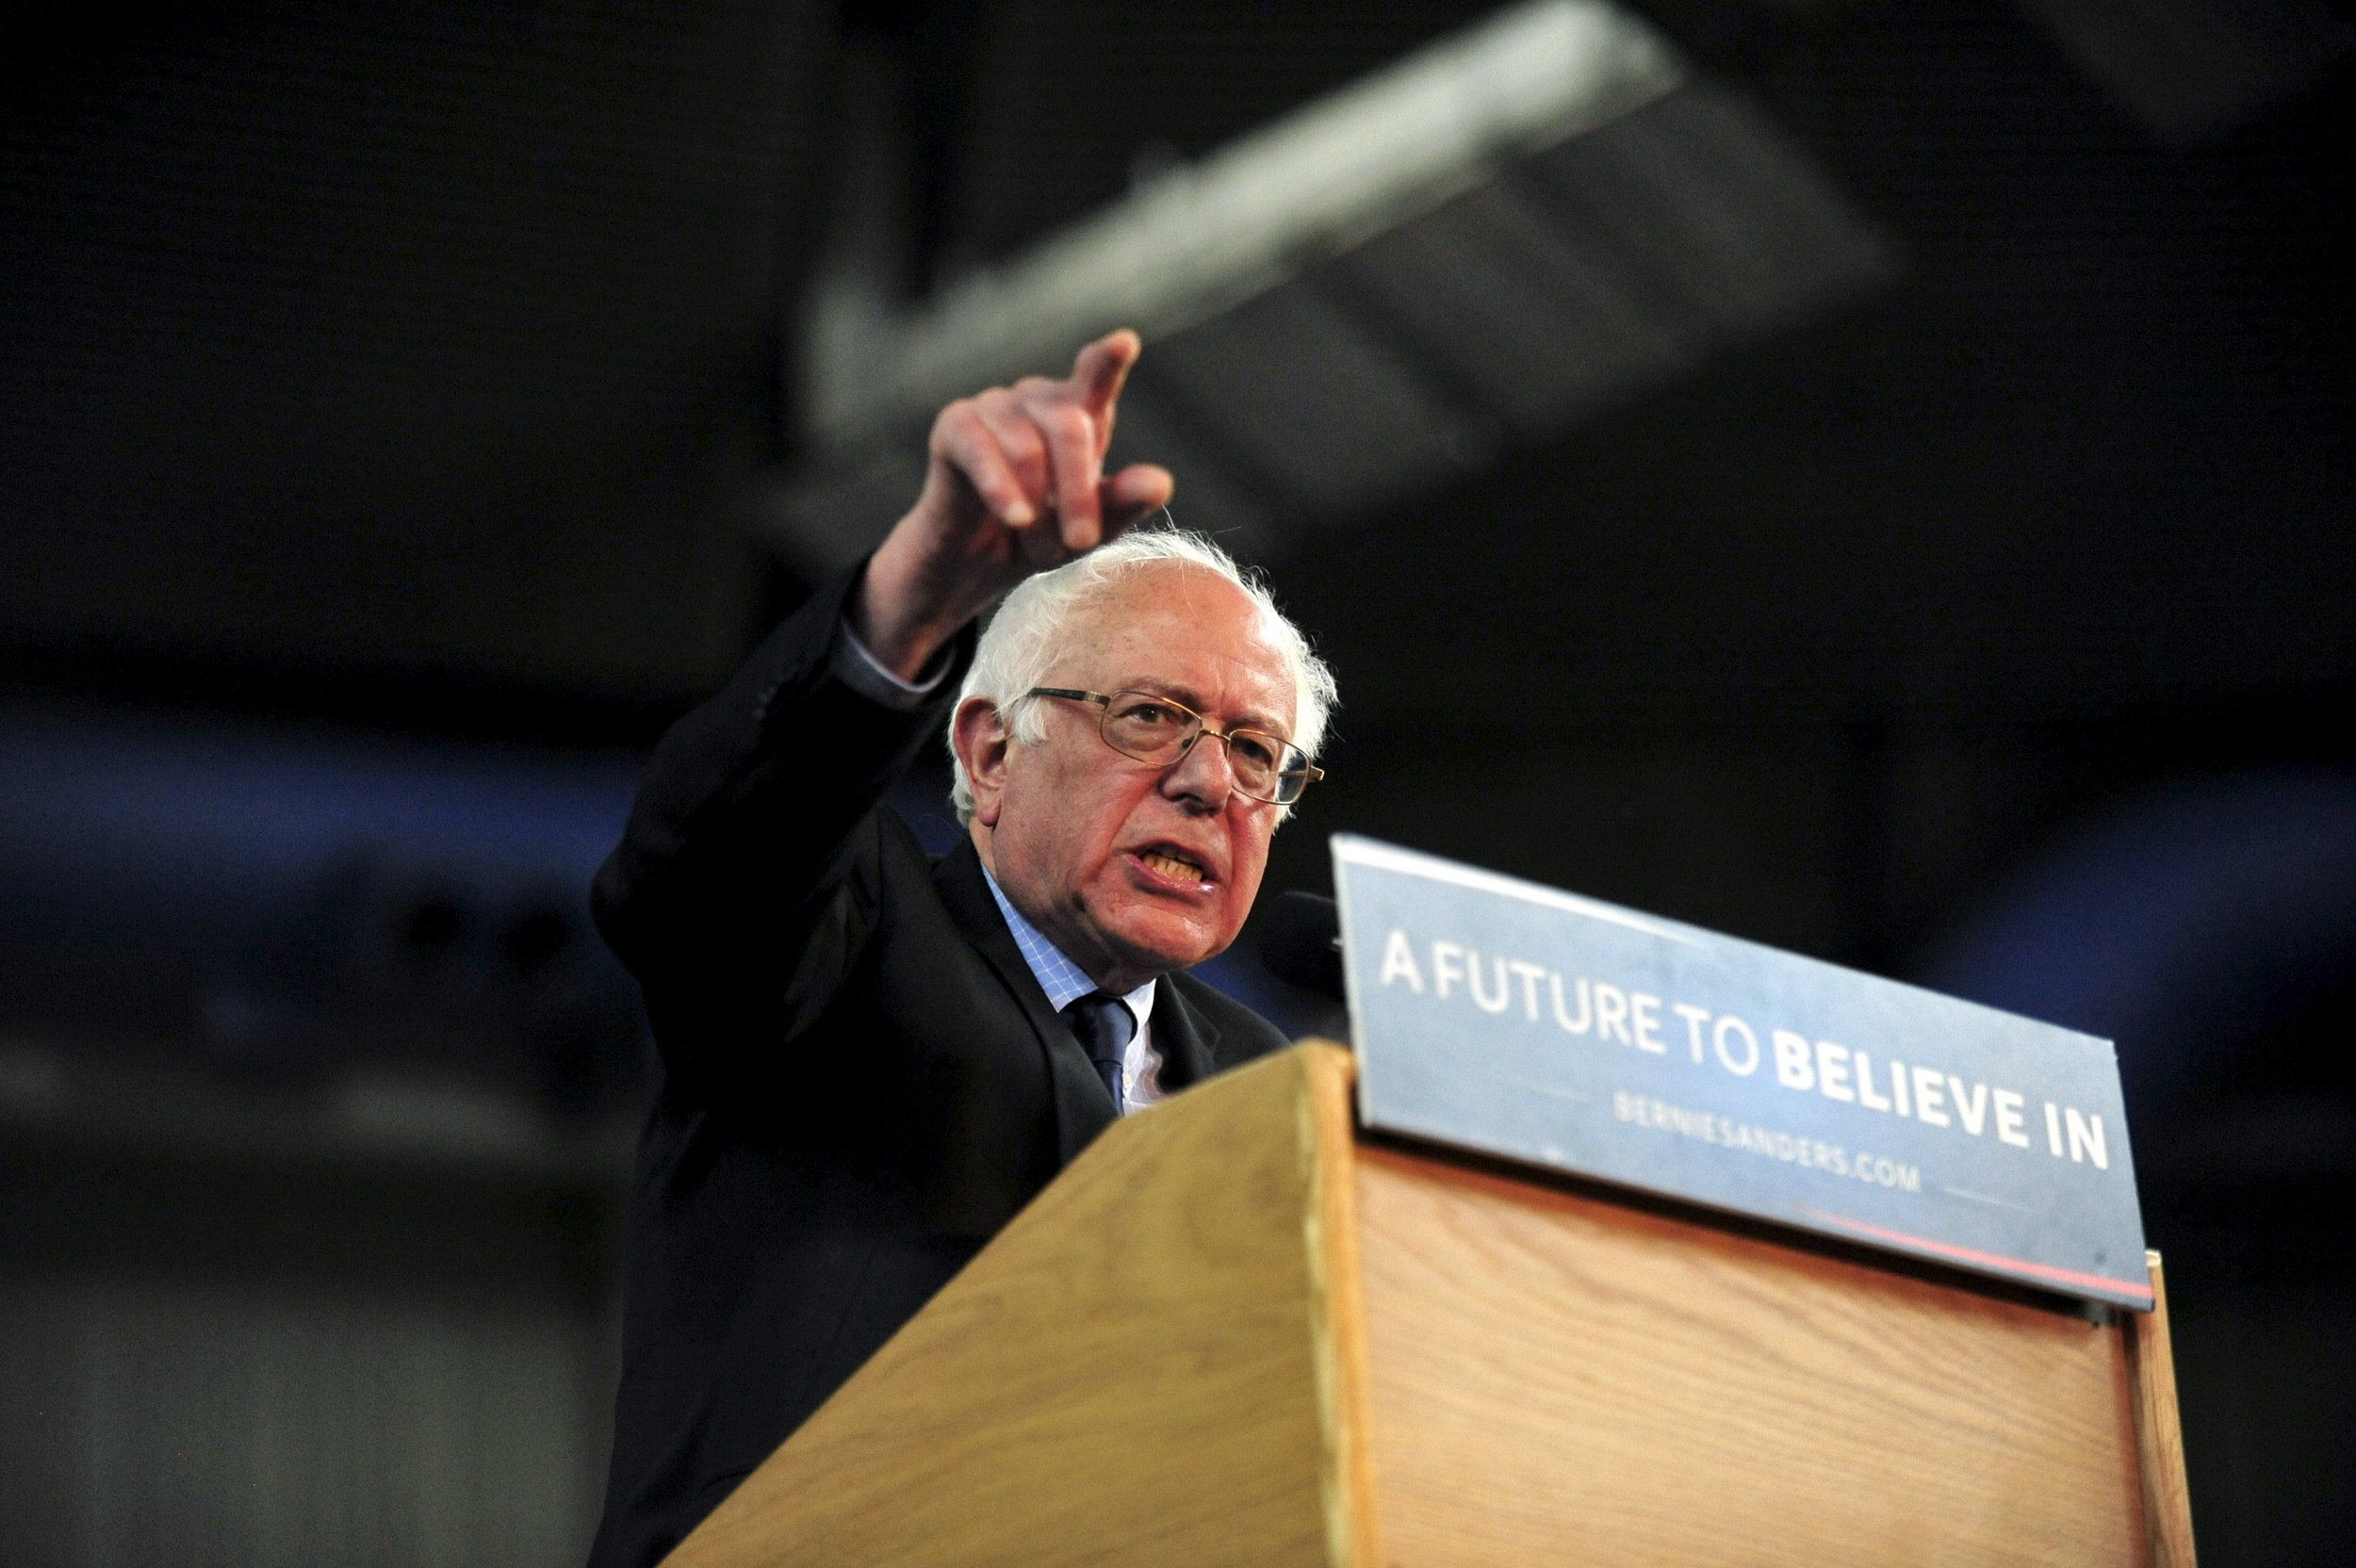 Democratic presidential candidate Bernie Sanders speaks at a campaign event in Yakima, Washington March 24, 2016. REUTERS/Michael Lopez        EDITORIAL USE ONLY. NO RESALES. NO ARCHIVE